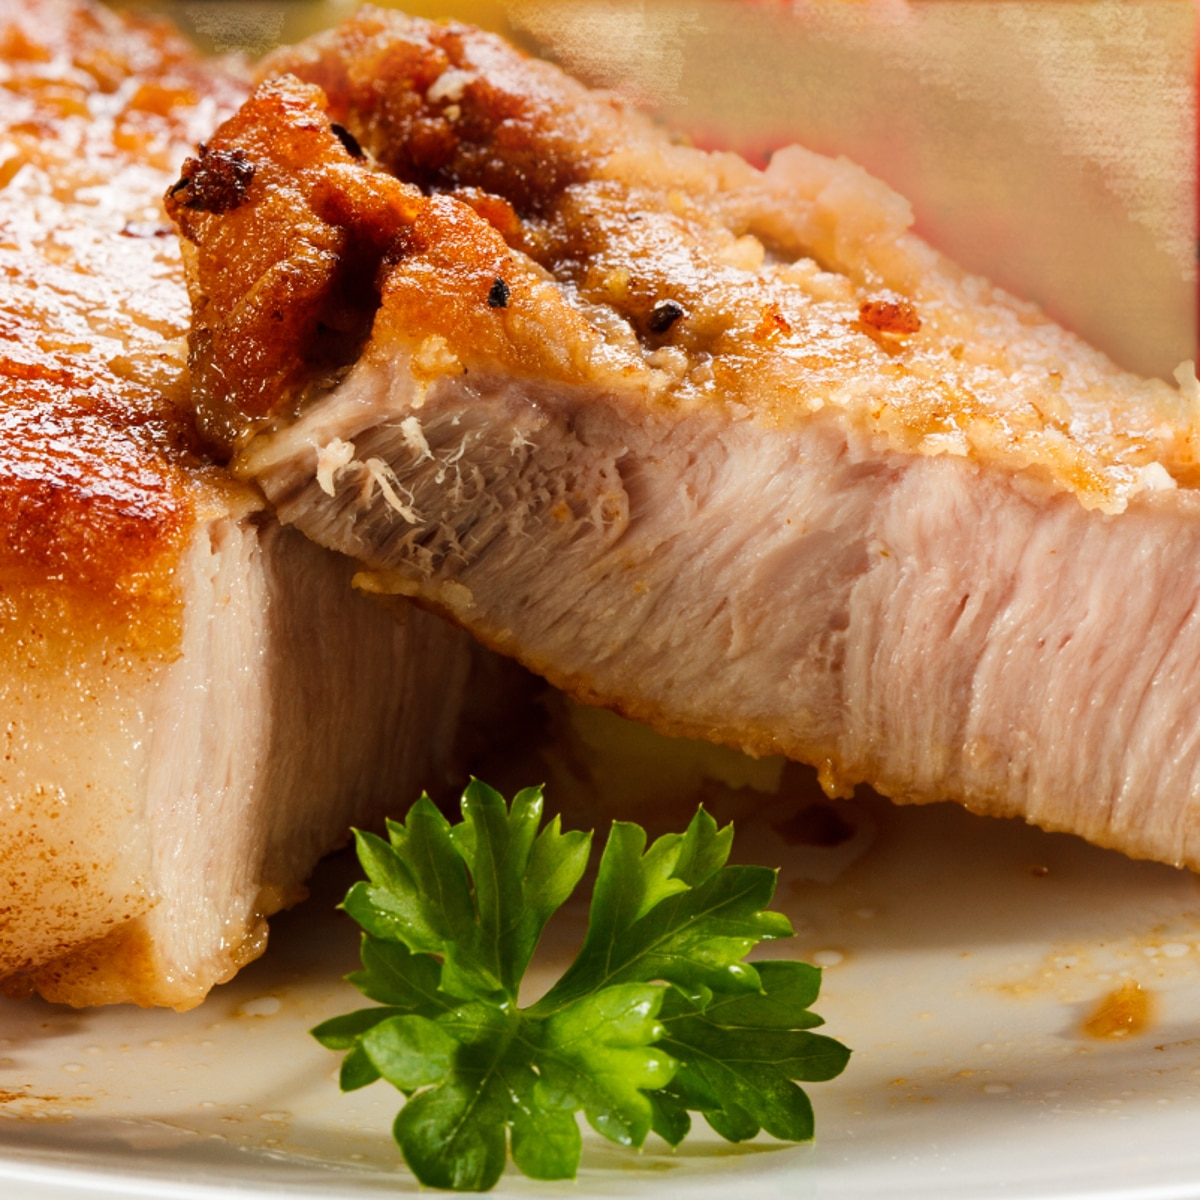 Perfectly Fried Pork Chop showing a browned exterior and a hint of pink in the center.